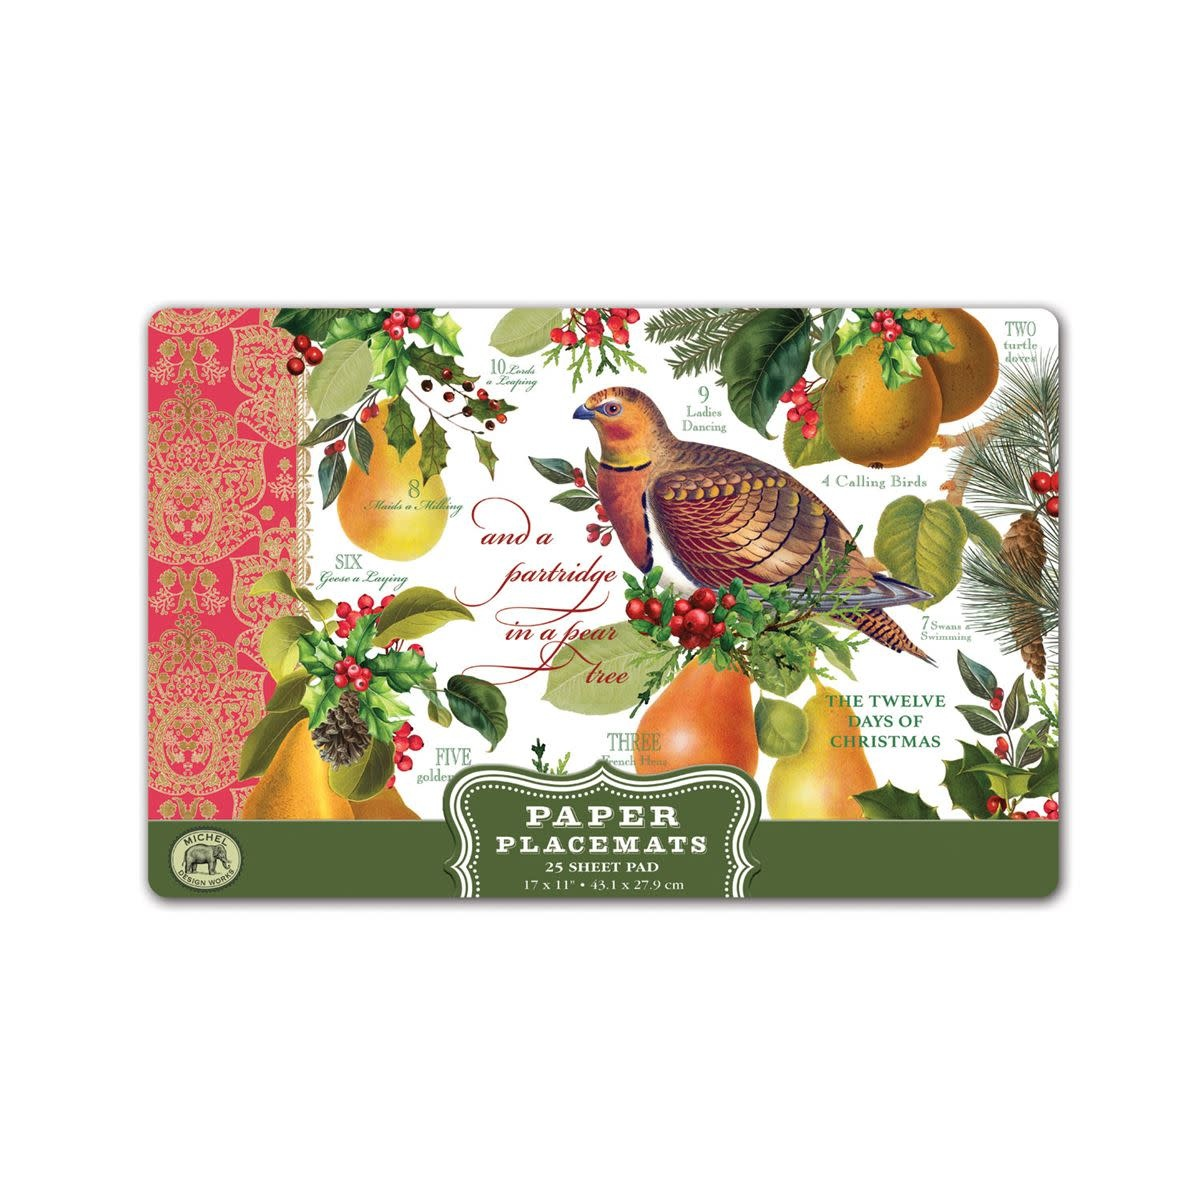 Michel Design Works In a Pear Tree Placemats